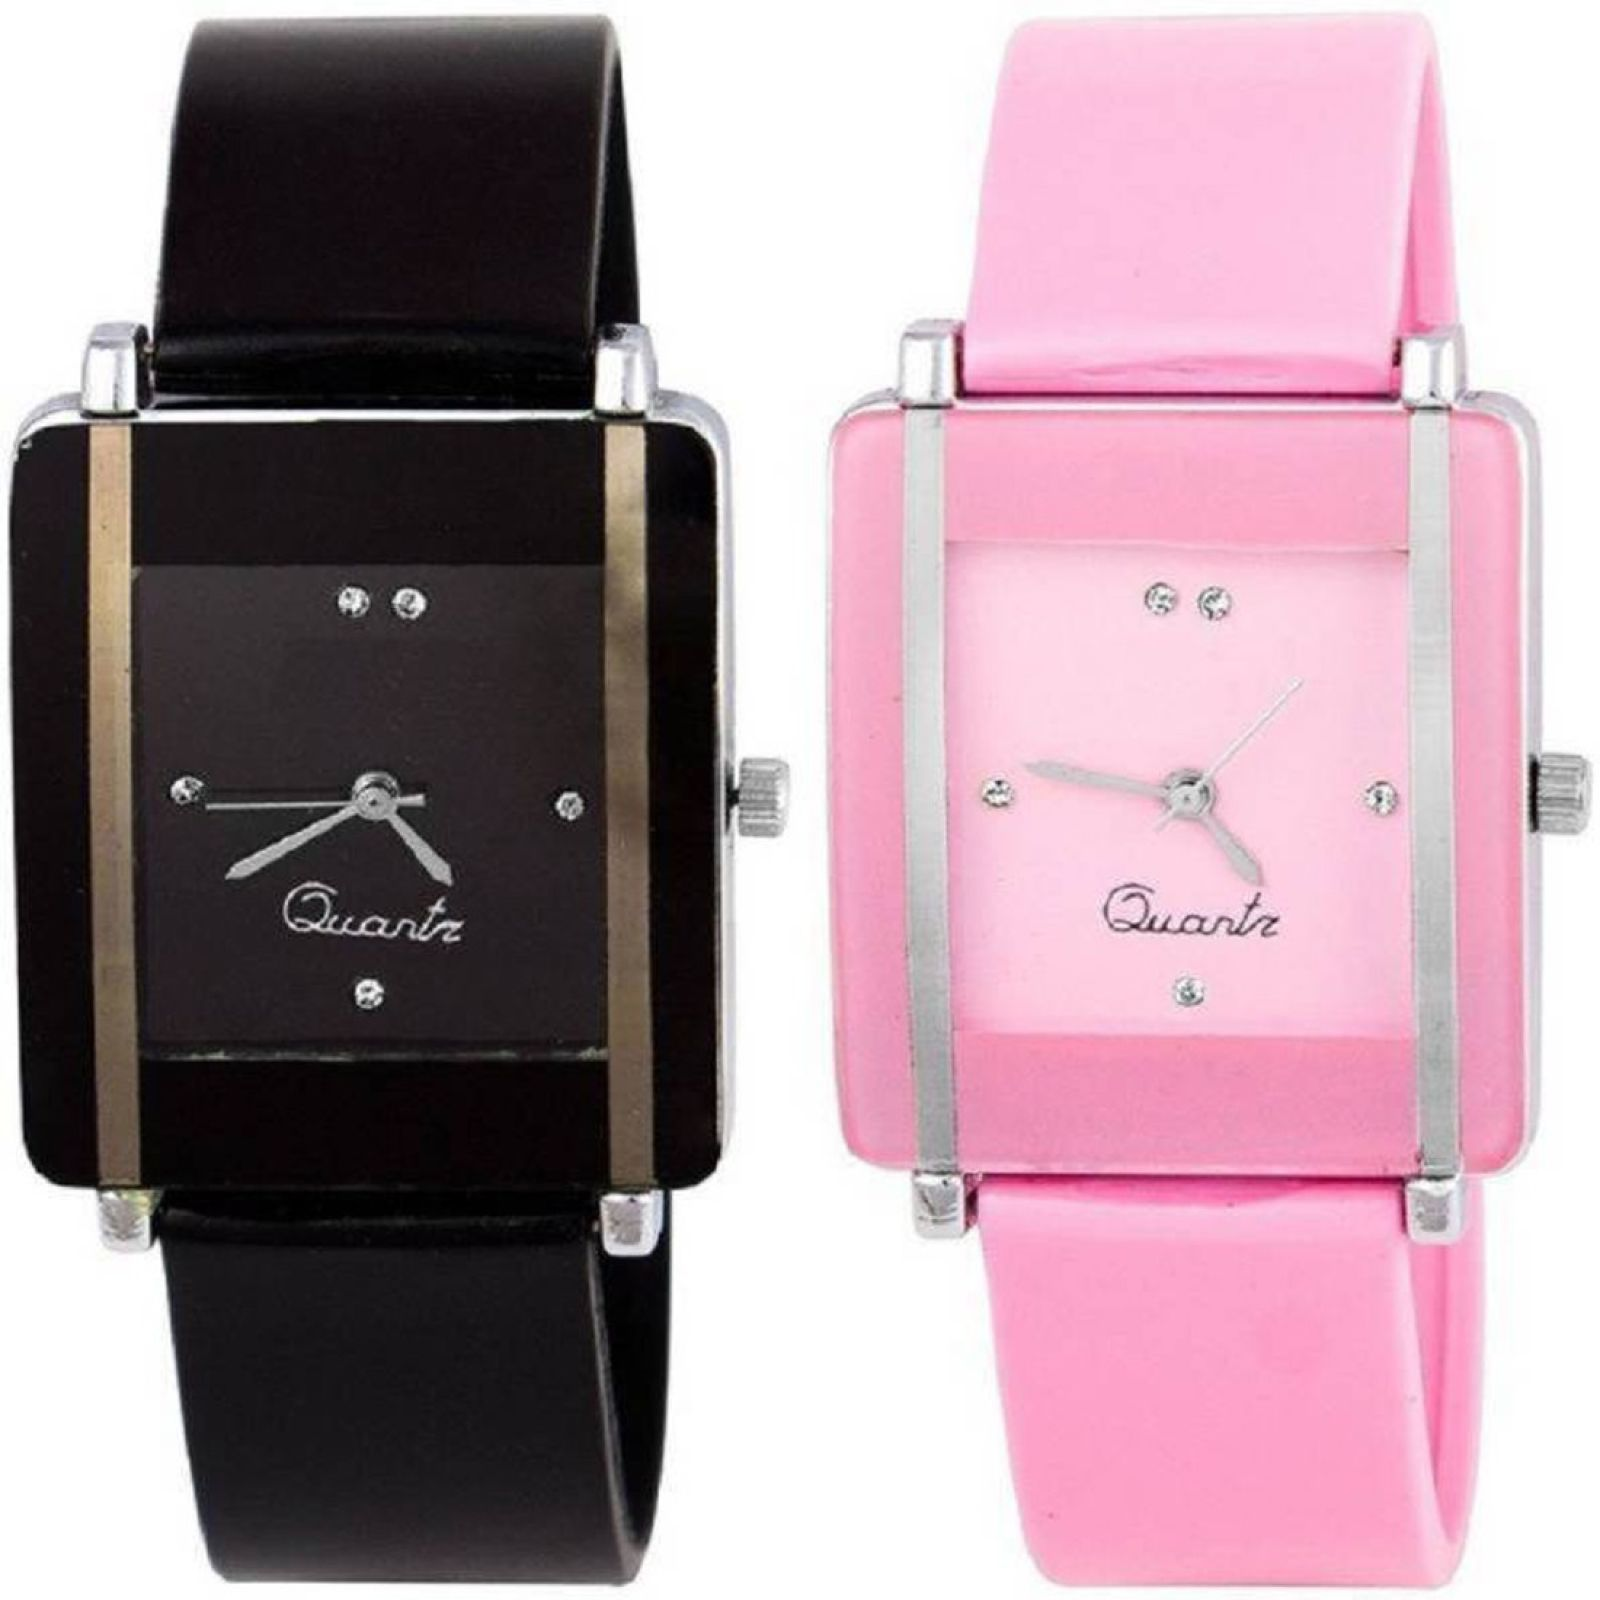 ReniSales SQUARE DIAL PINK BLACK COMBO FOR YOUR FASHION Watch - For Women